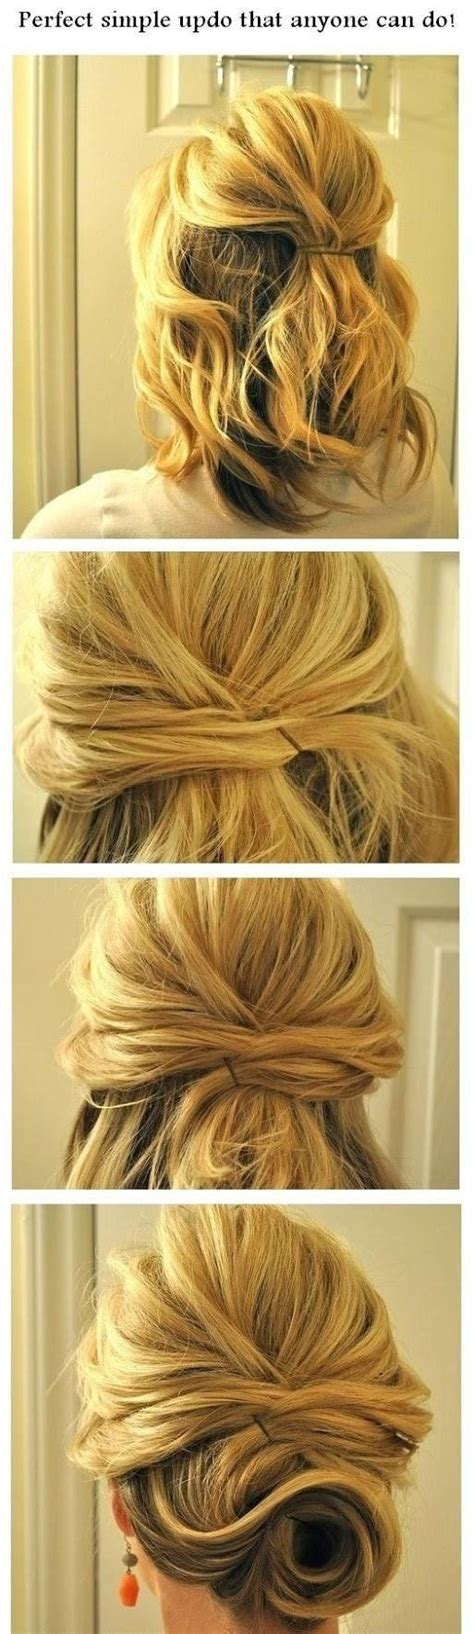 15 Cute and Easy Hairstyle Tutorials For Medium Length